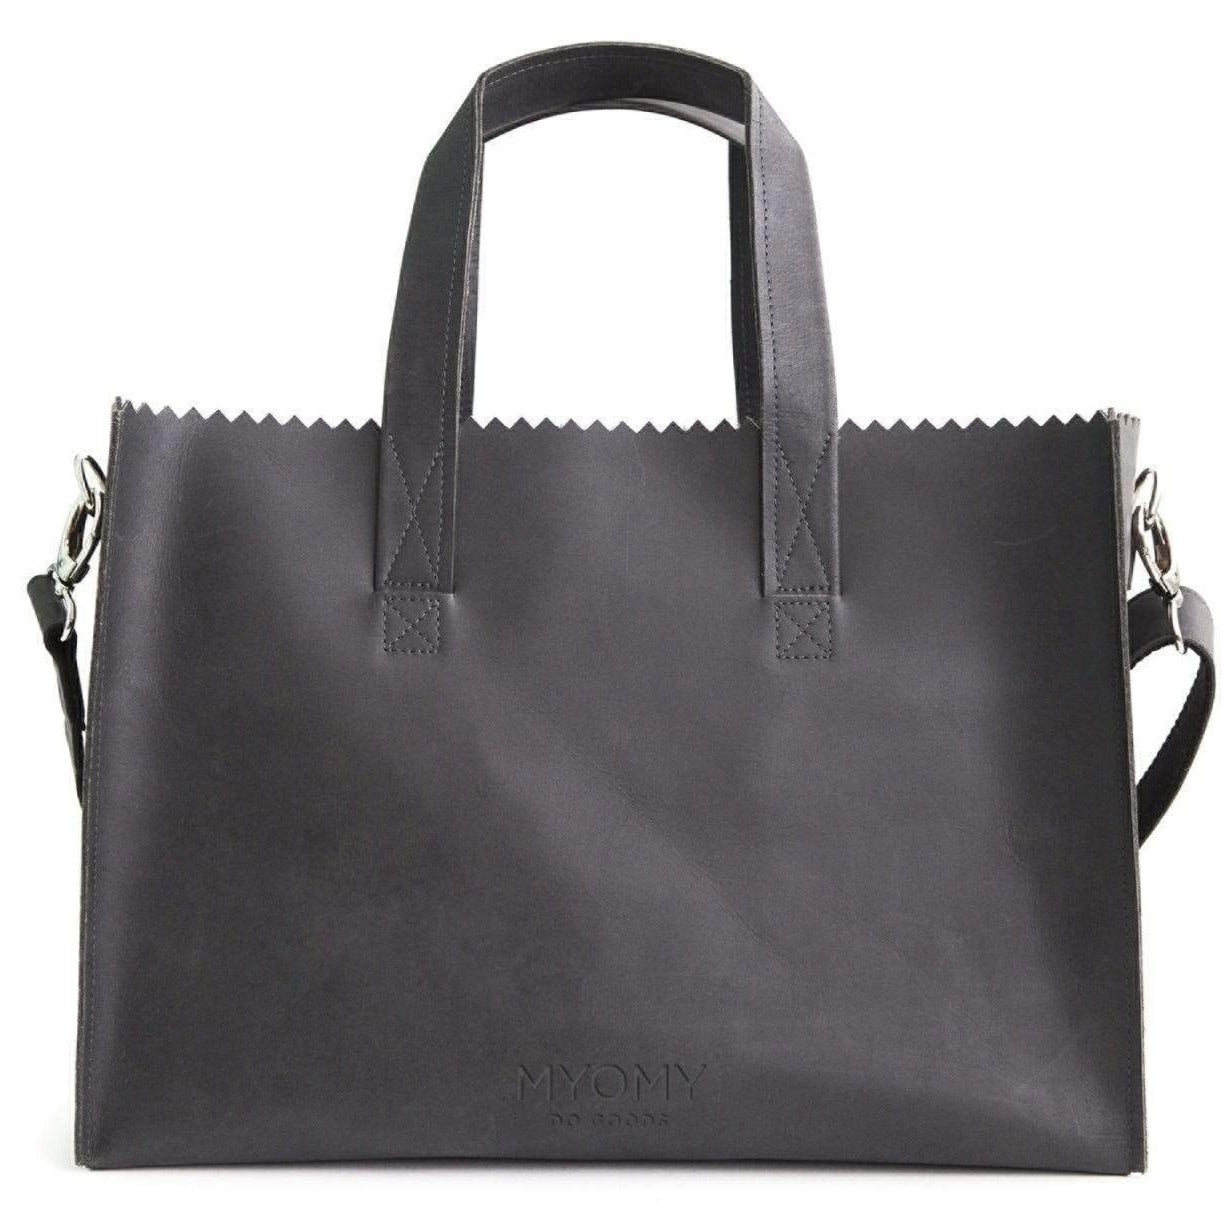 Goodforall bv Workbags Hunter Off Black MY PAPER BAG Baby in Leather and Recycled PET. sustainable fashion ethical fashion